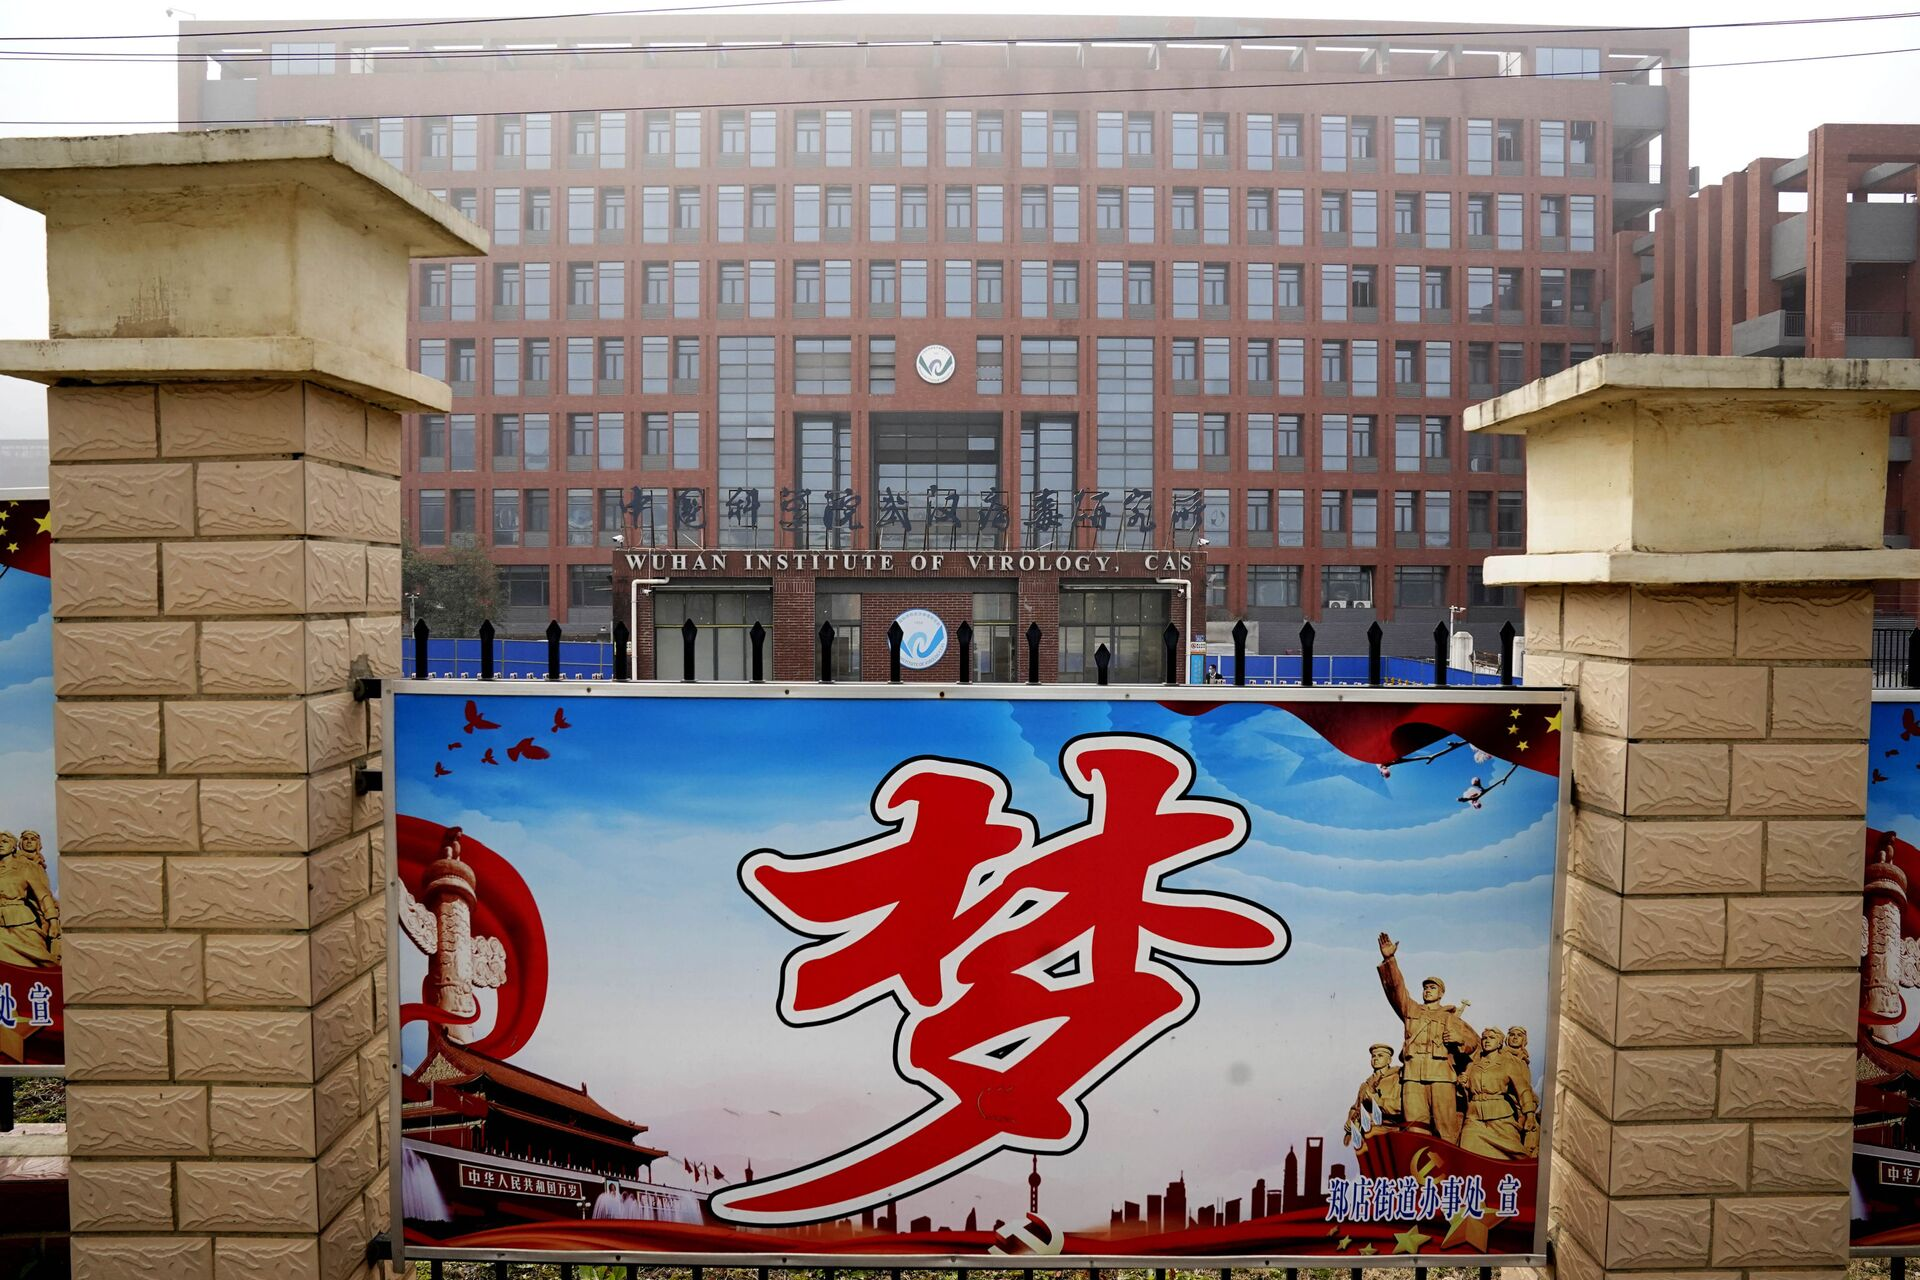 The Wuhan Institute of Virology is seen near the Chinese character for Dream during a visit by the World Health Organization team in Wuhan, China, Wednesday, Feb. 3, 2021 - Sputnik International, 1920, 07.09.2021